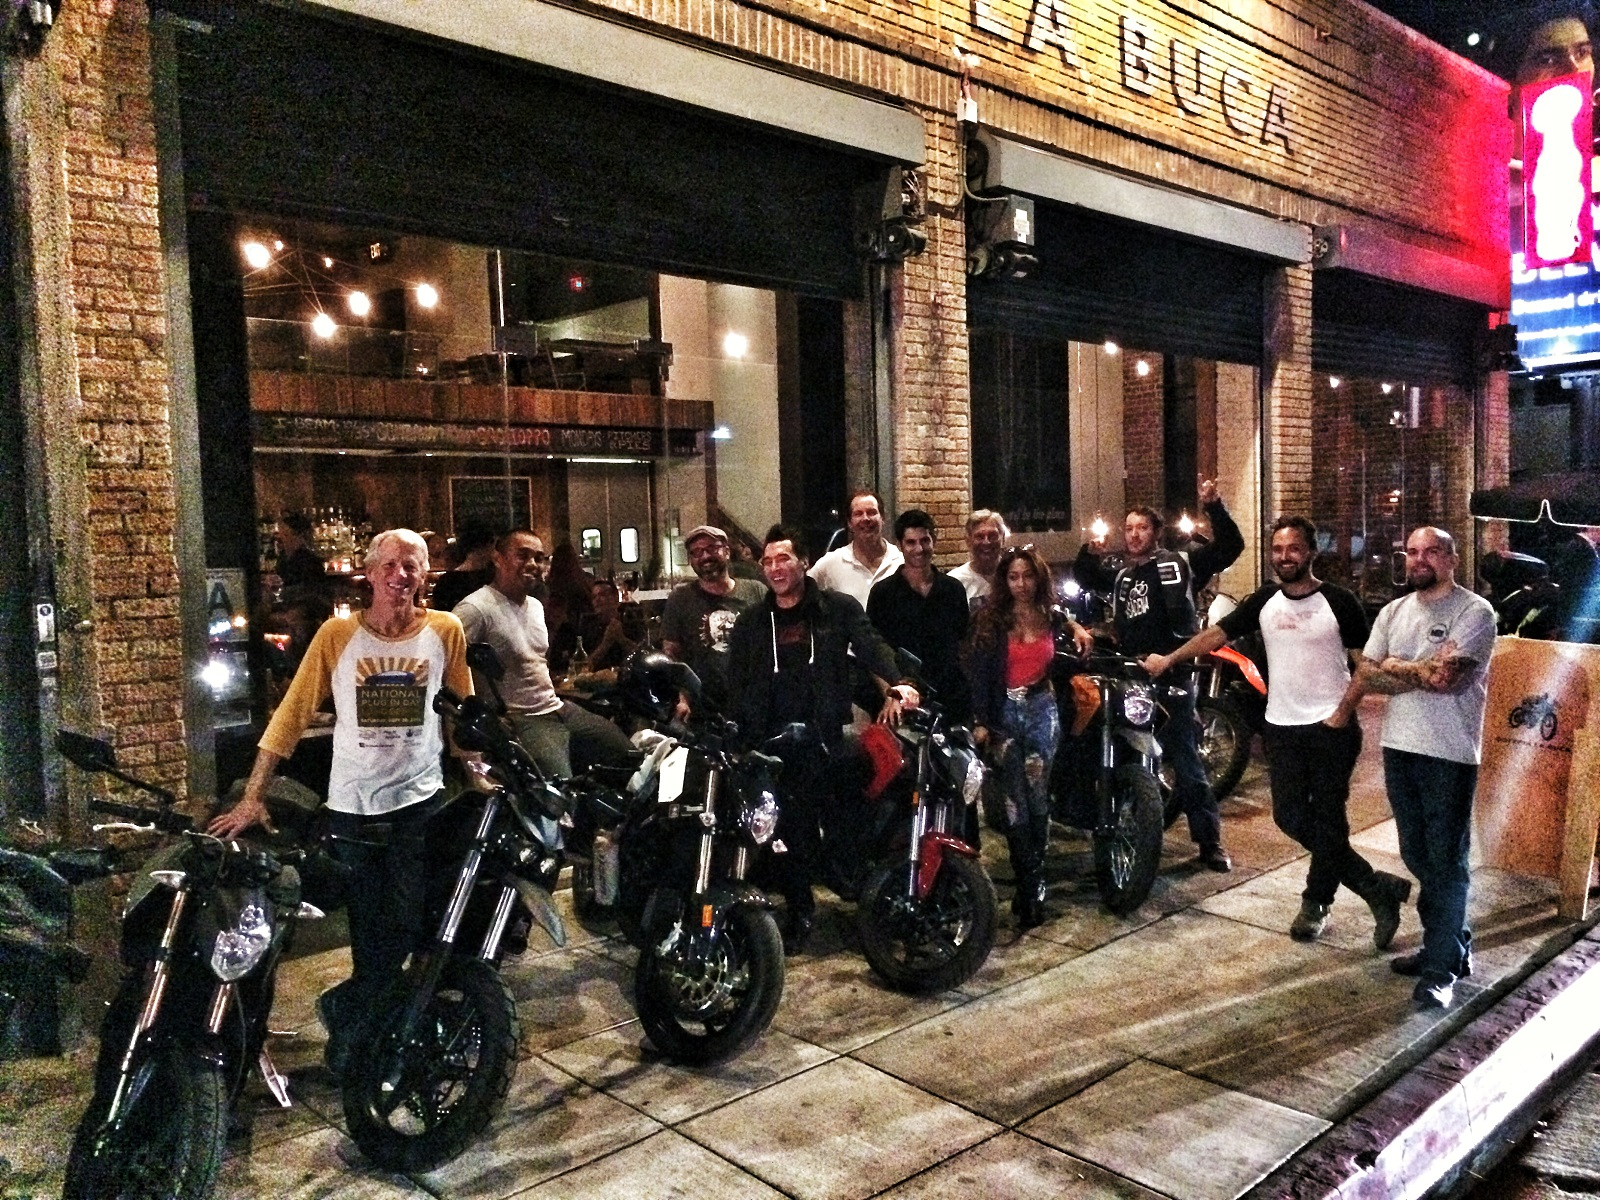 Electric Motorcycle Gangs: You'll Never Hear Them Coming